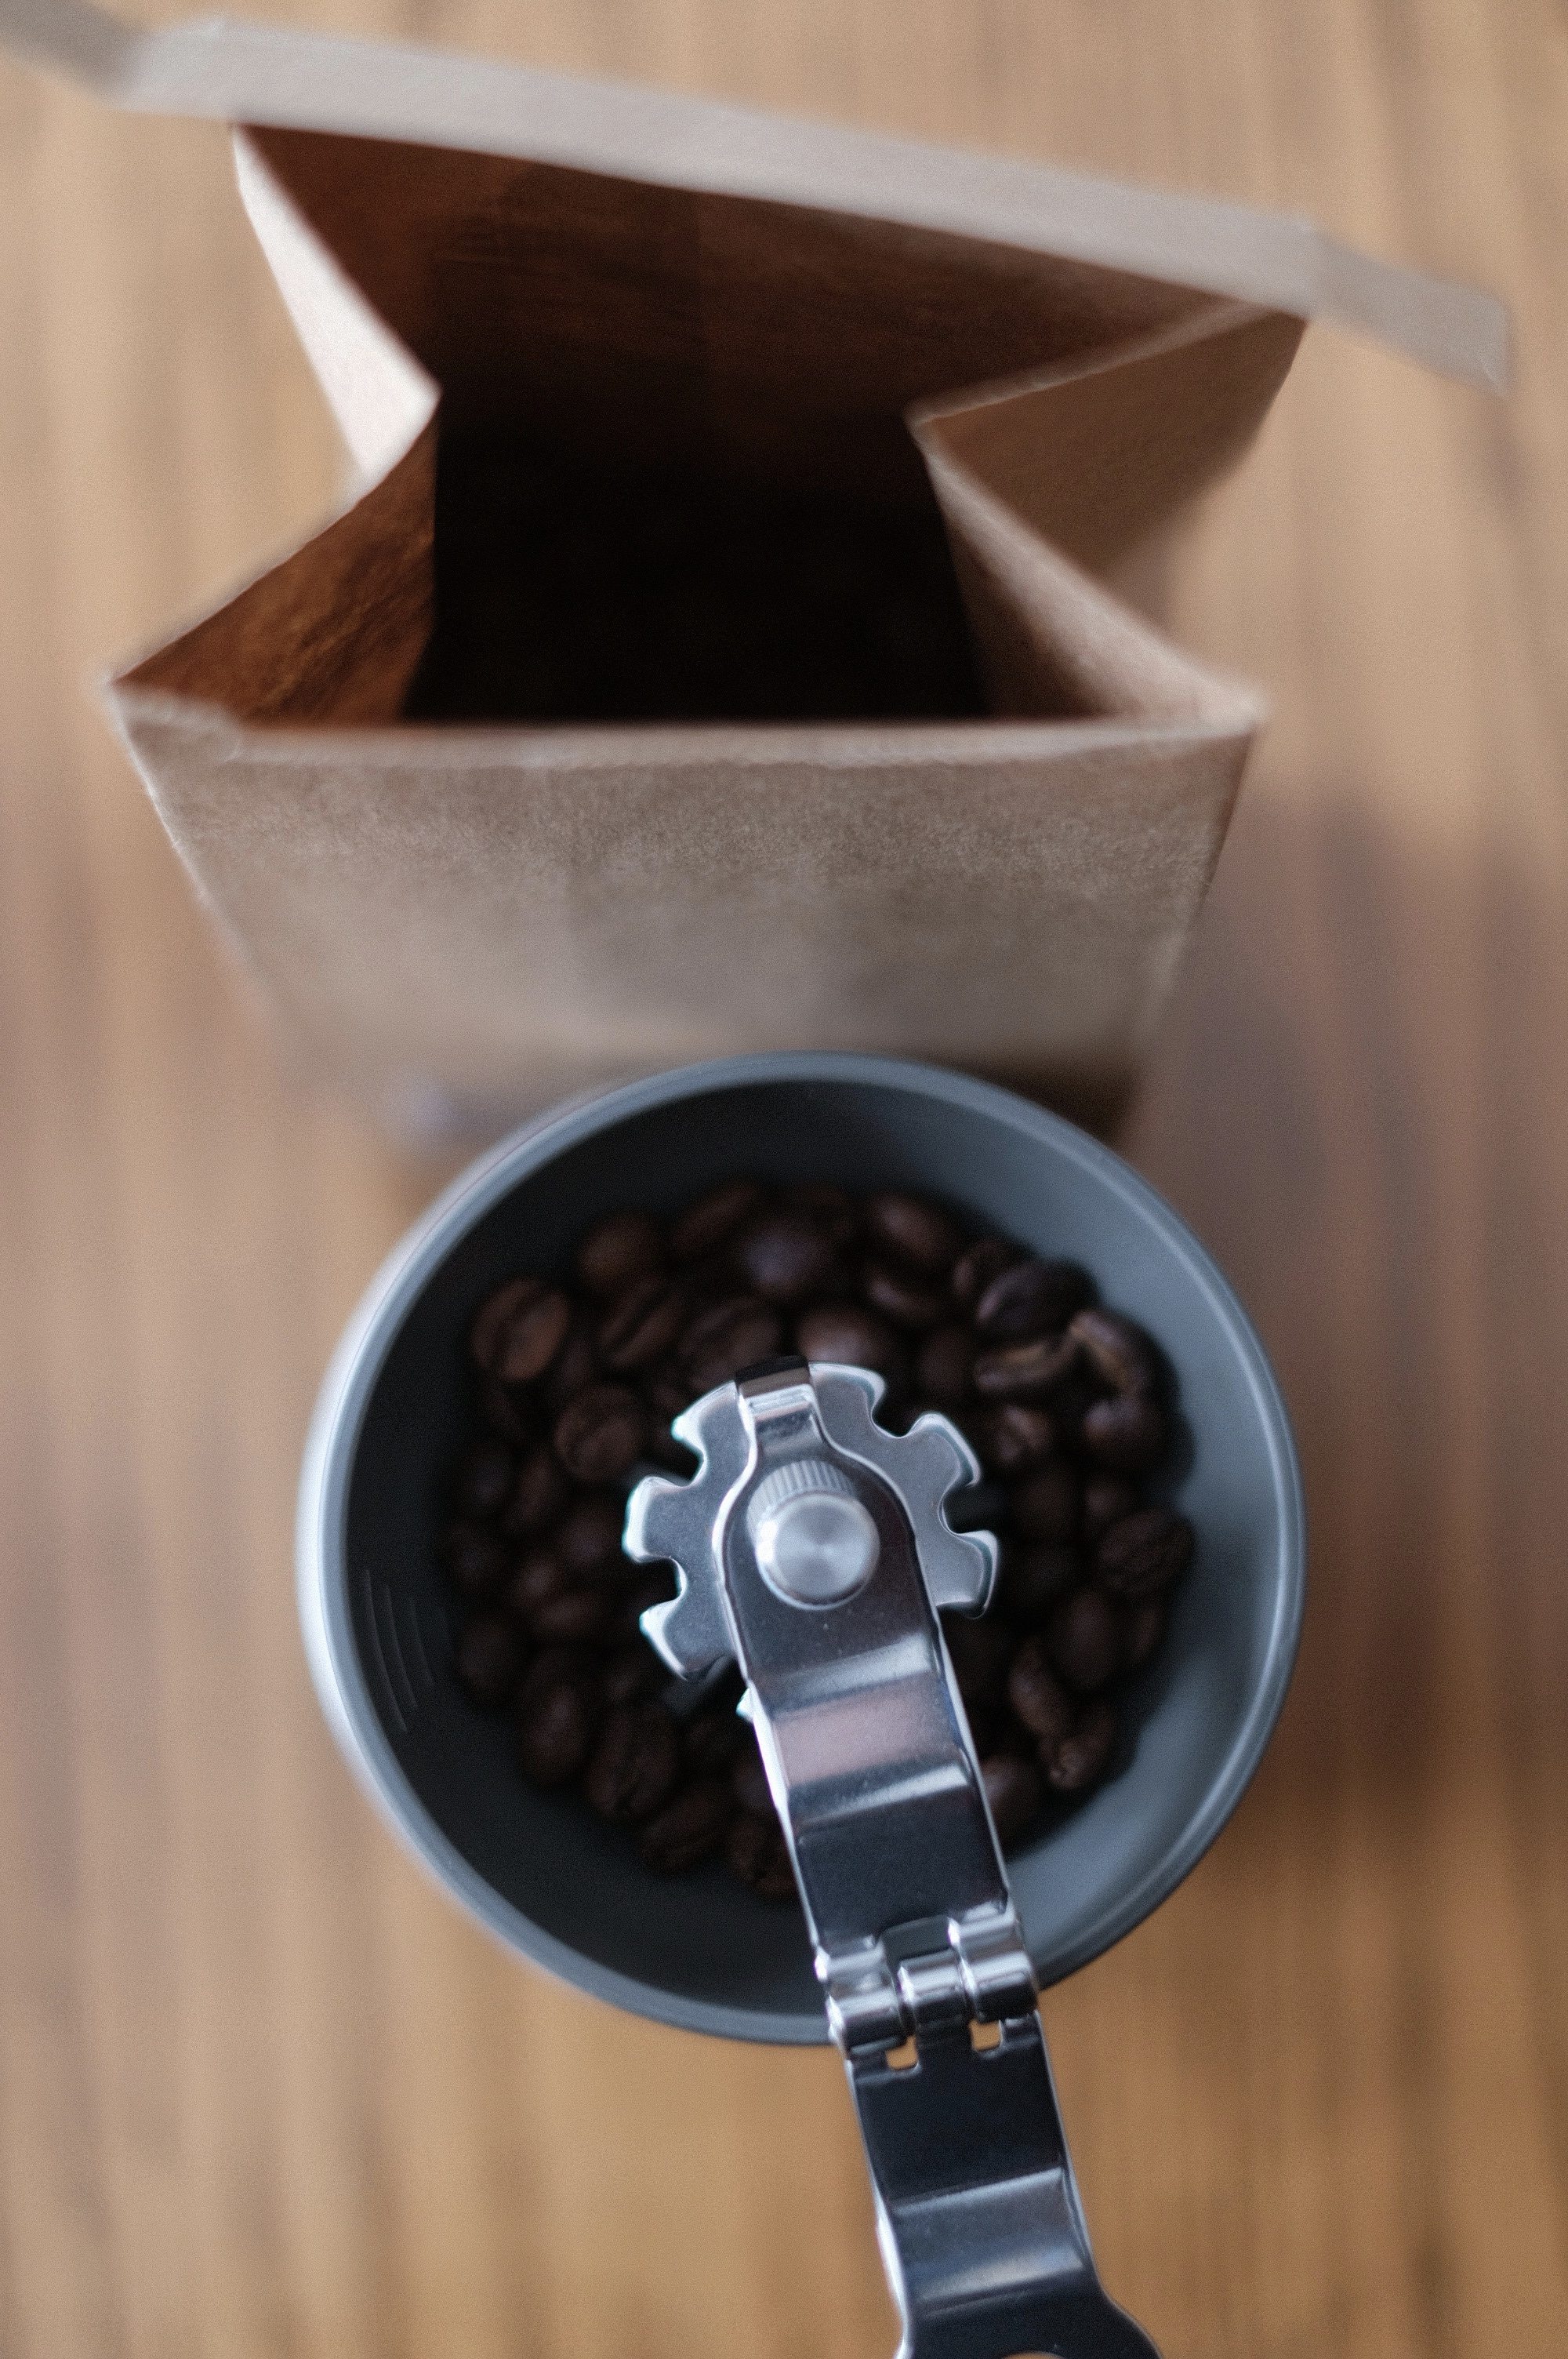 The small ceramic burr grinder, included.